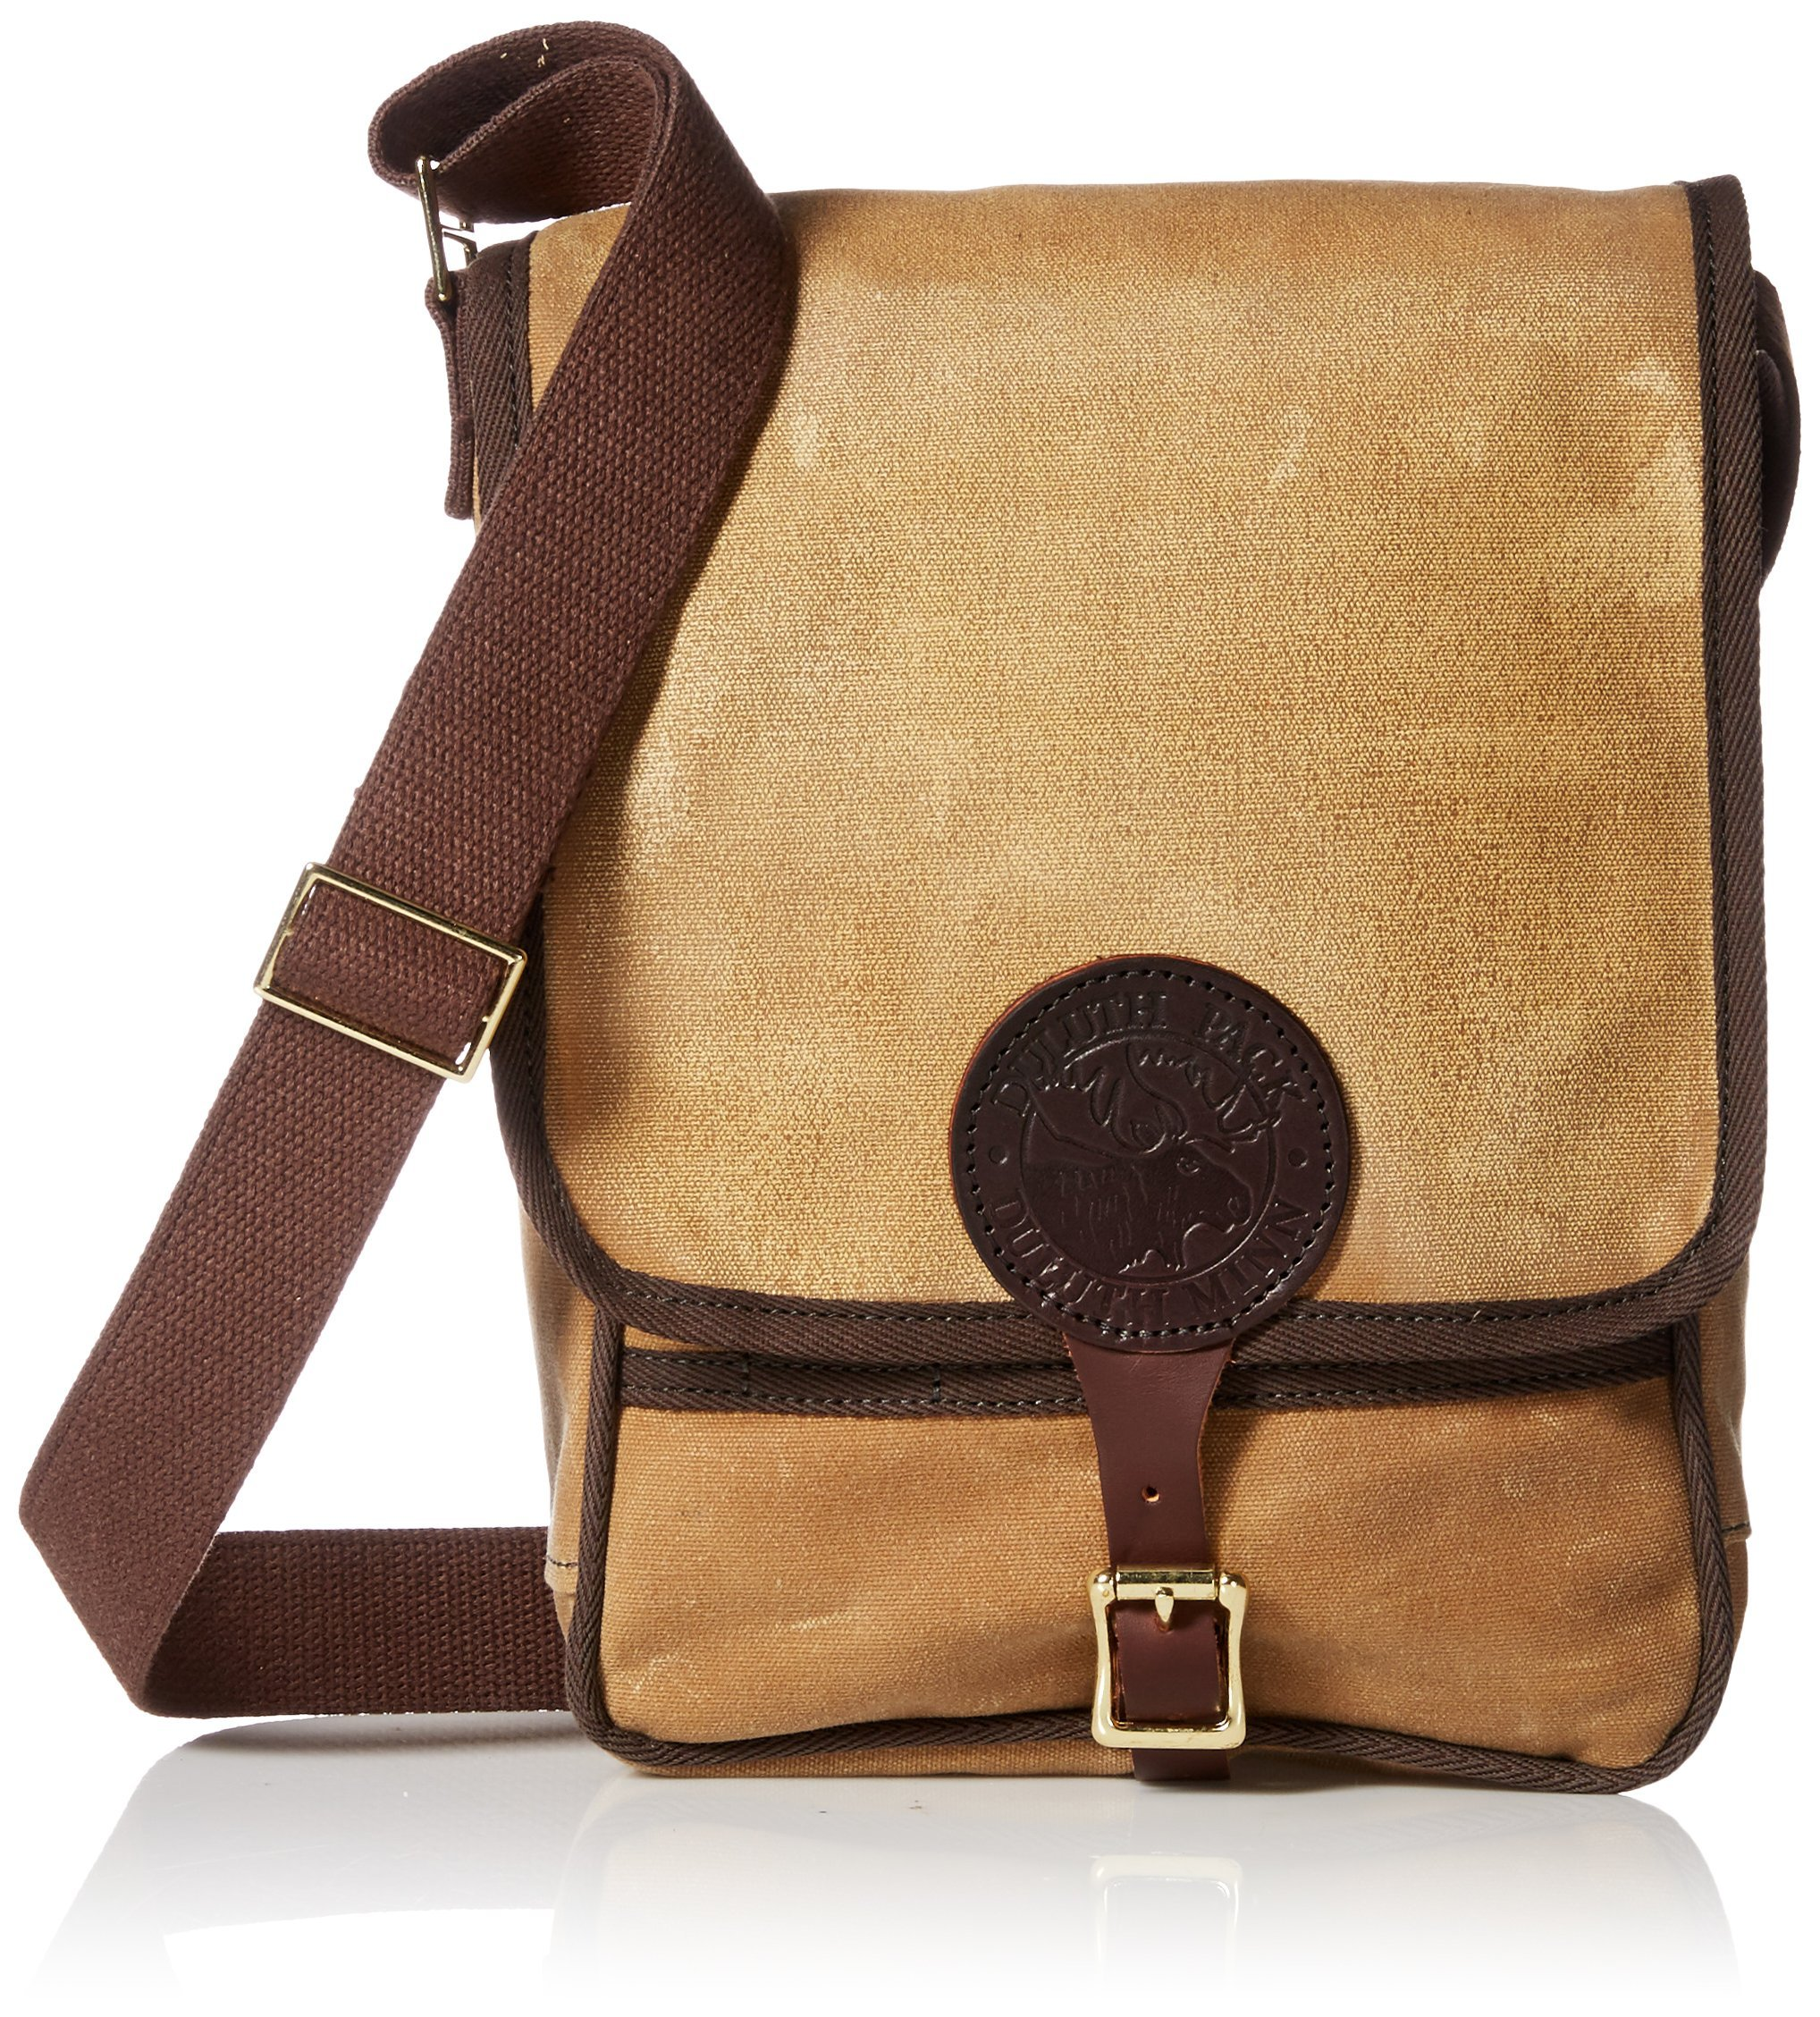 Duluth Pack Haversack with Cotton Web Trim, Tan, 11 x 8 x 4-Inch